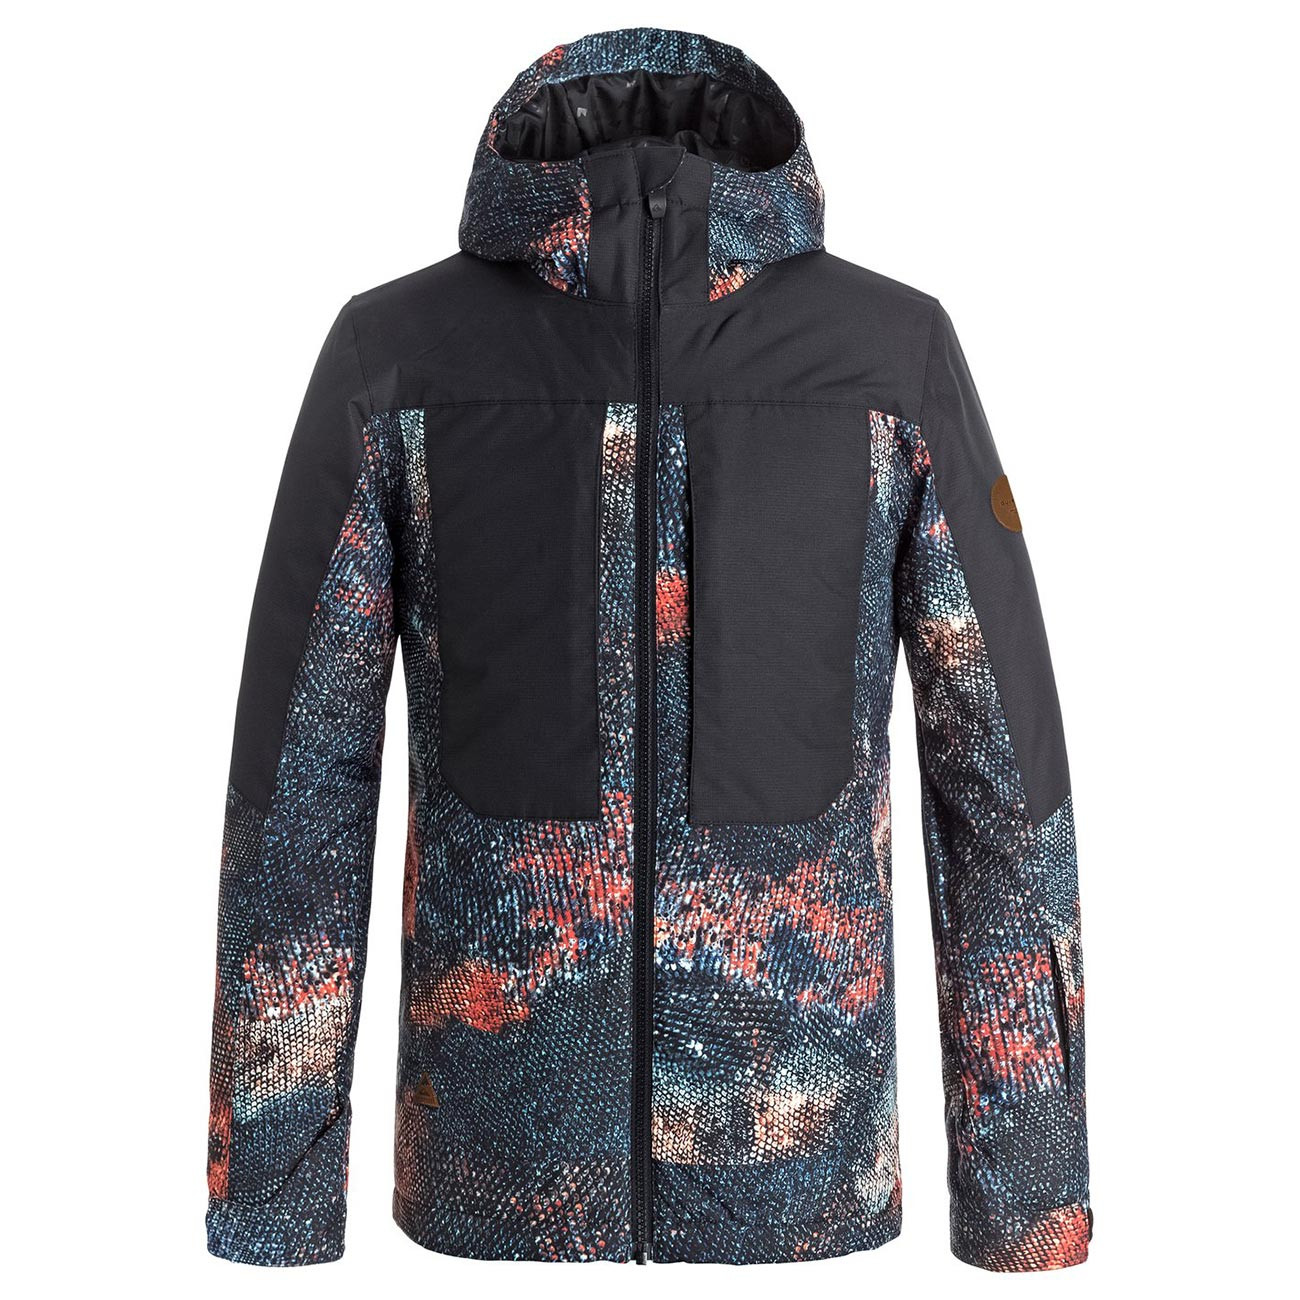 Bunda Quiksilver Tr Ambition Youth marine iguana real